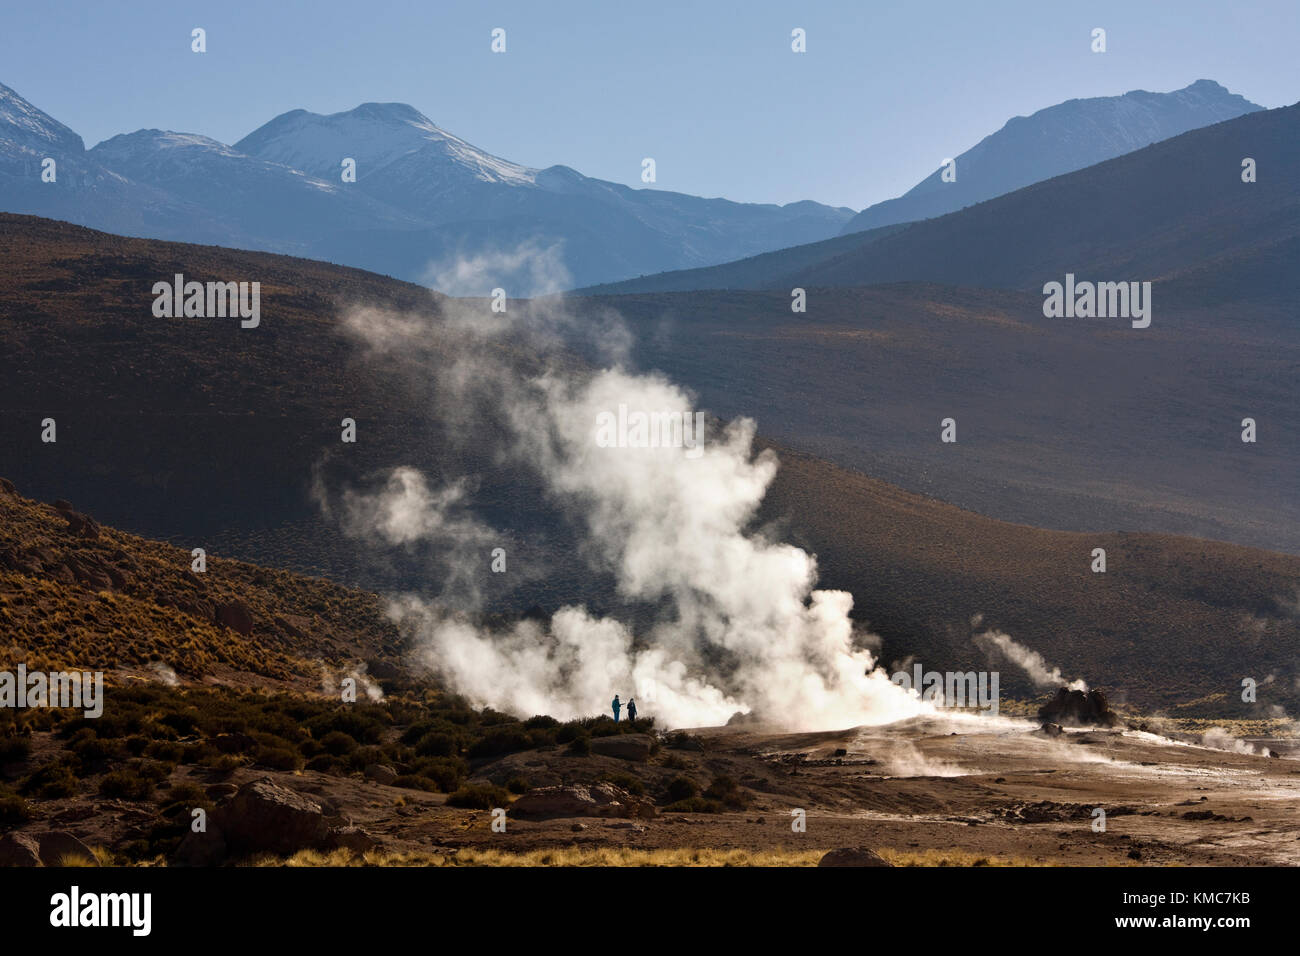 Geysers and geothermal steam vents at the El Tatio Geyser Field at an altitude of 4500m (14764ft) in the Atacama - Stock Image